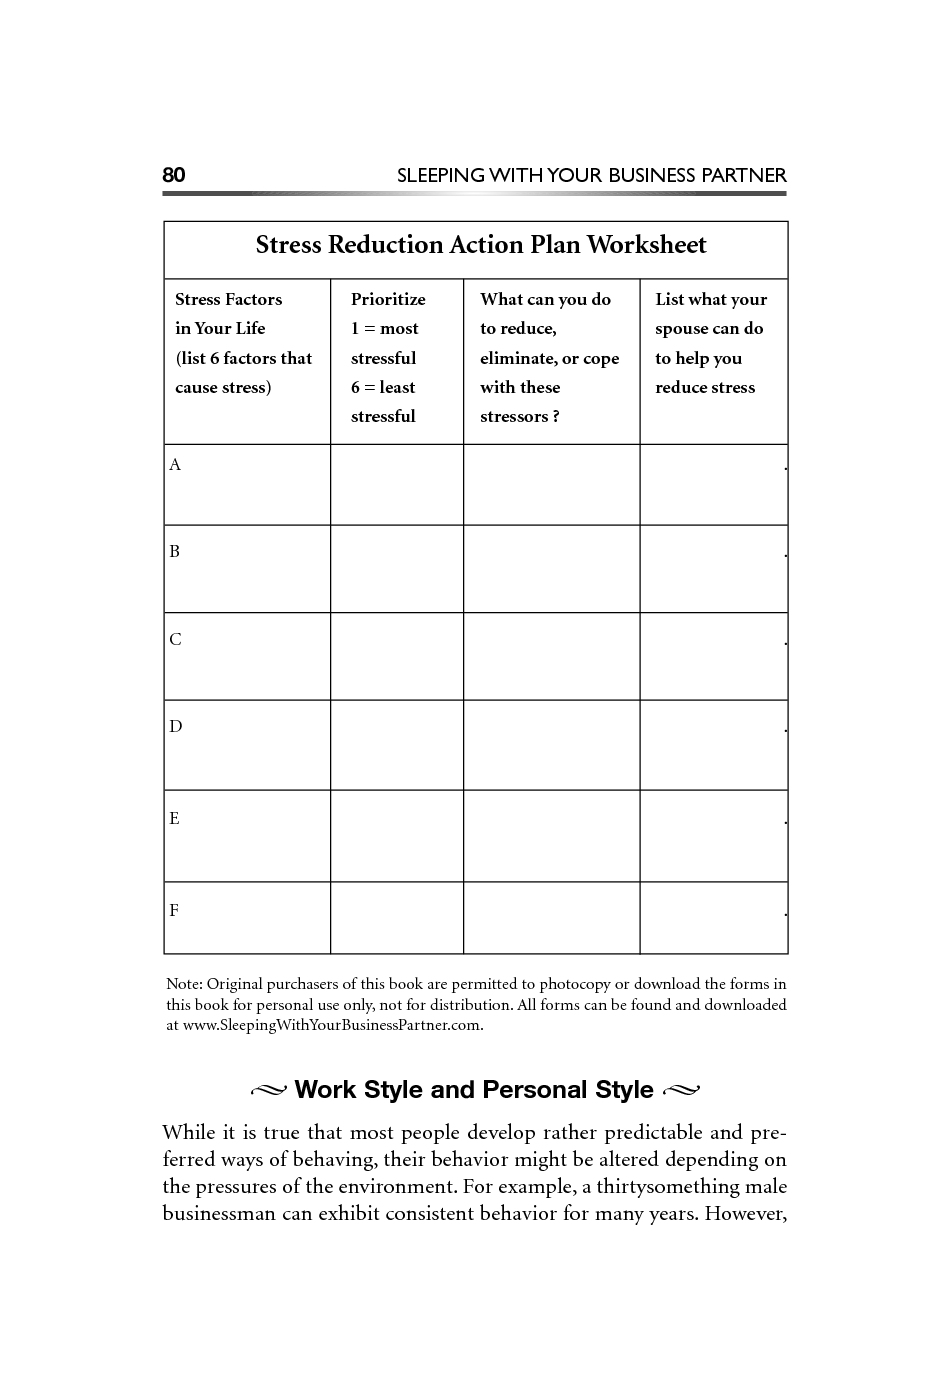 11 Best Images of Free Print Coping Worksheets - Coping ...